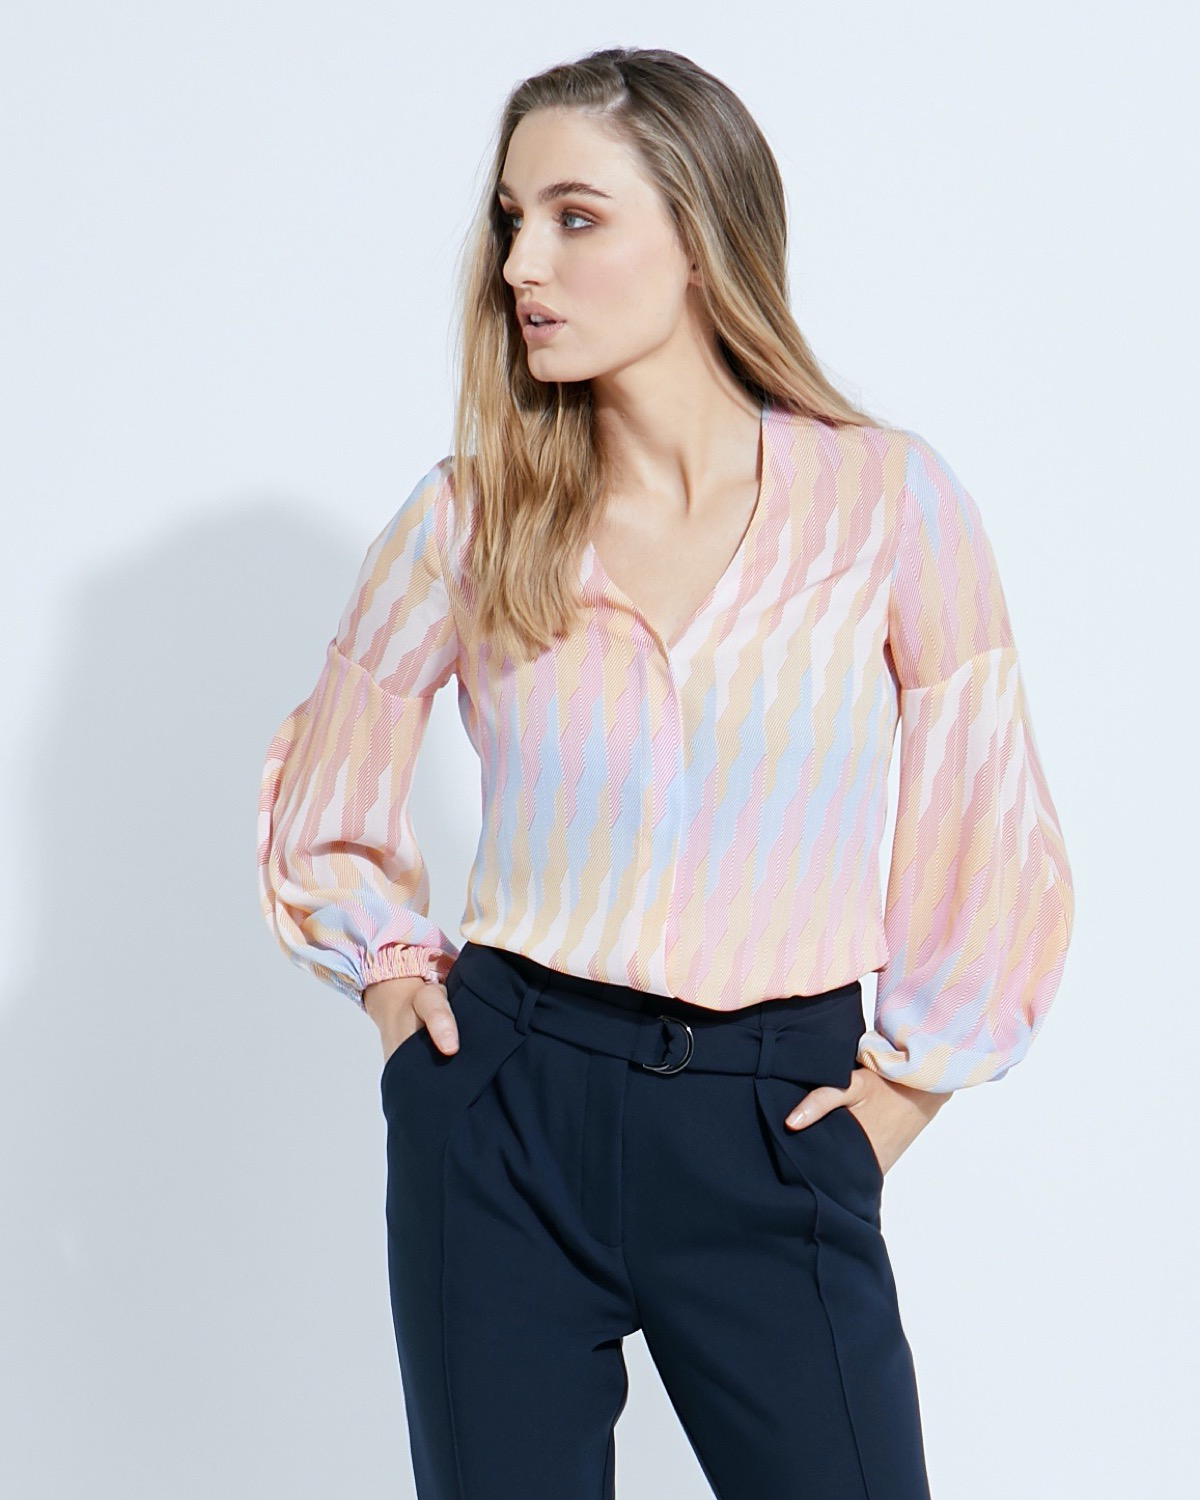 Lennon Courtney at Dunnes Stores Marigold Print Blouse